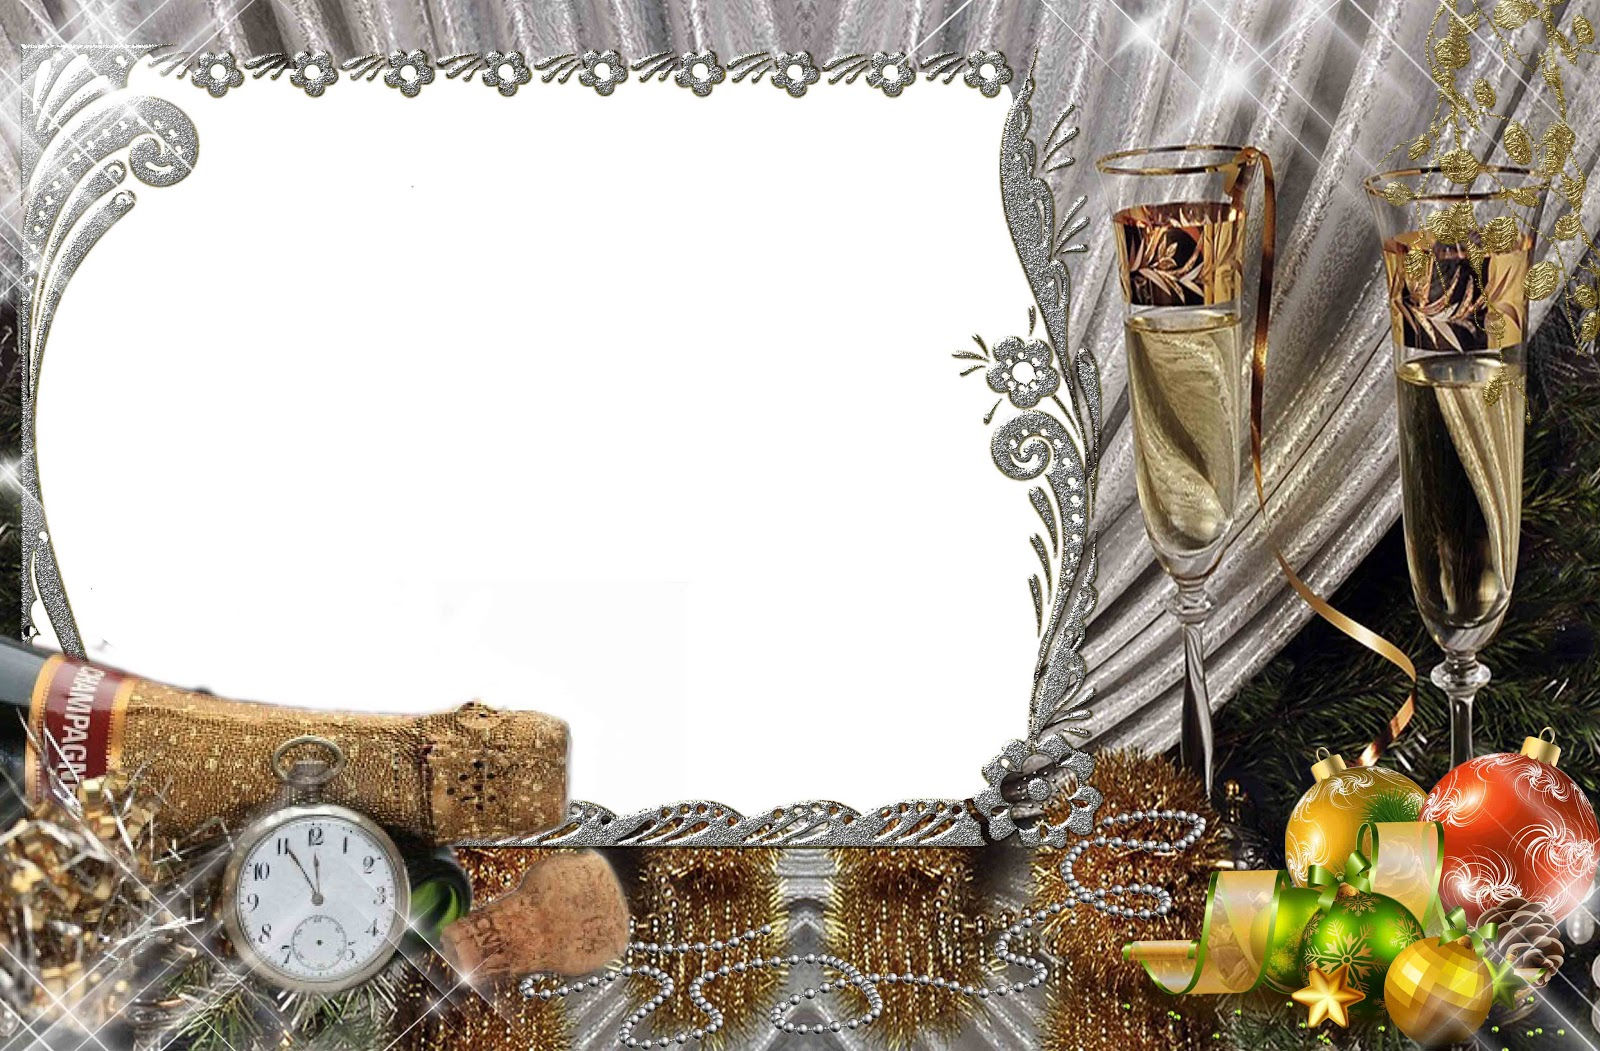 Background Transparent Xmas Frame 30327 Free Icons And